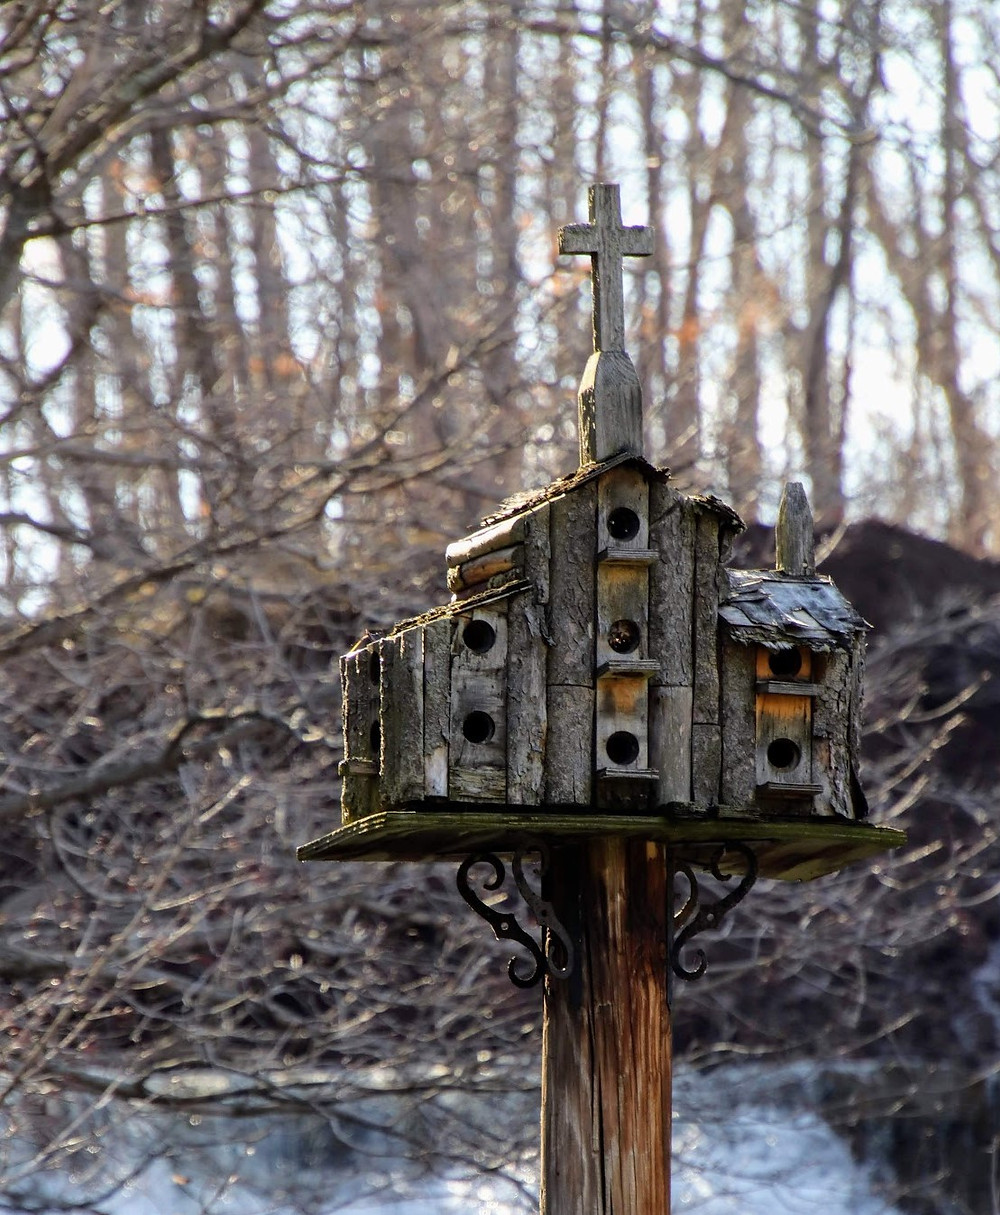 Rustic Birdhouse with Cross